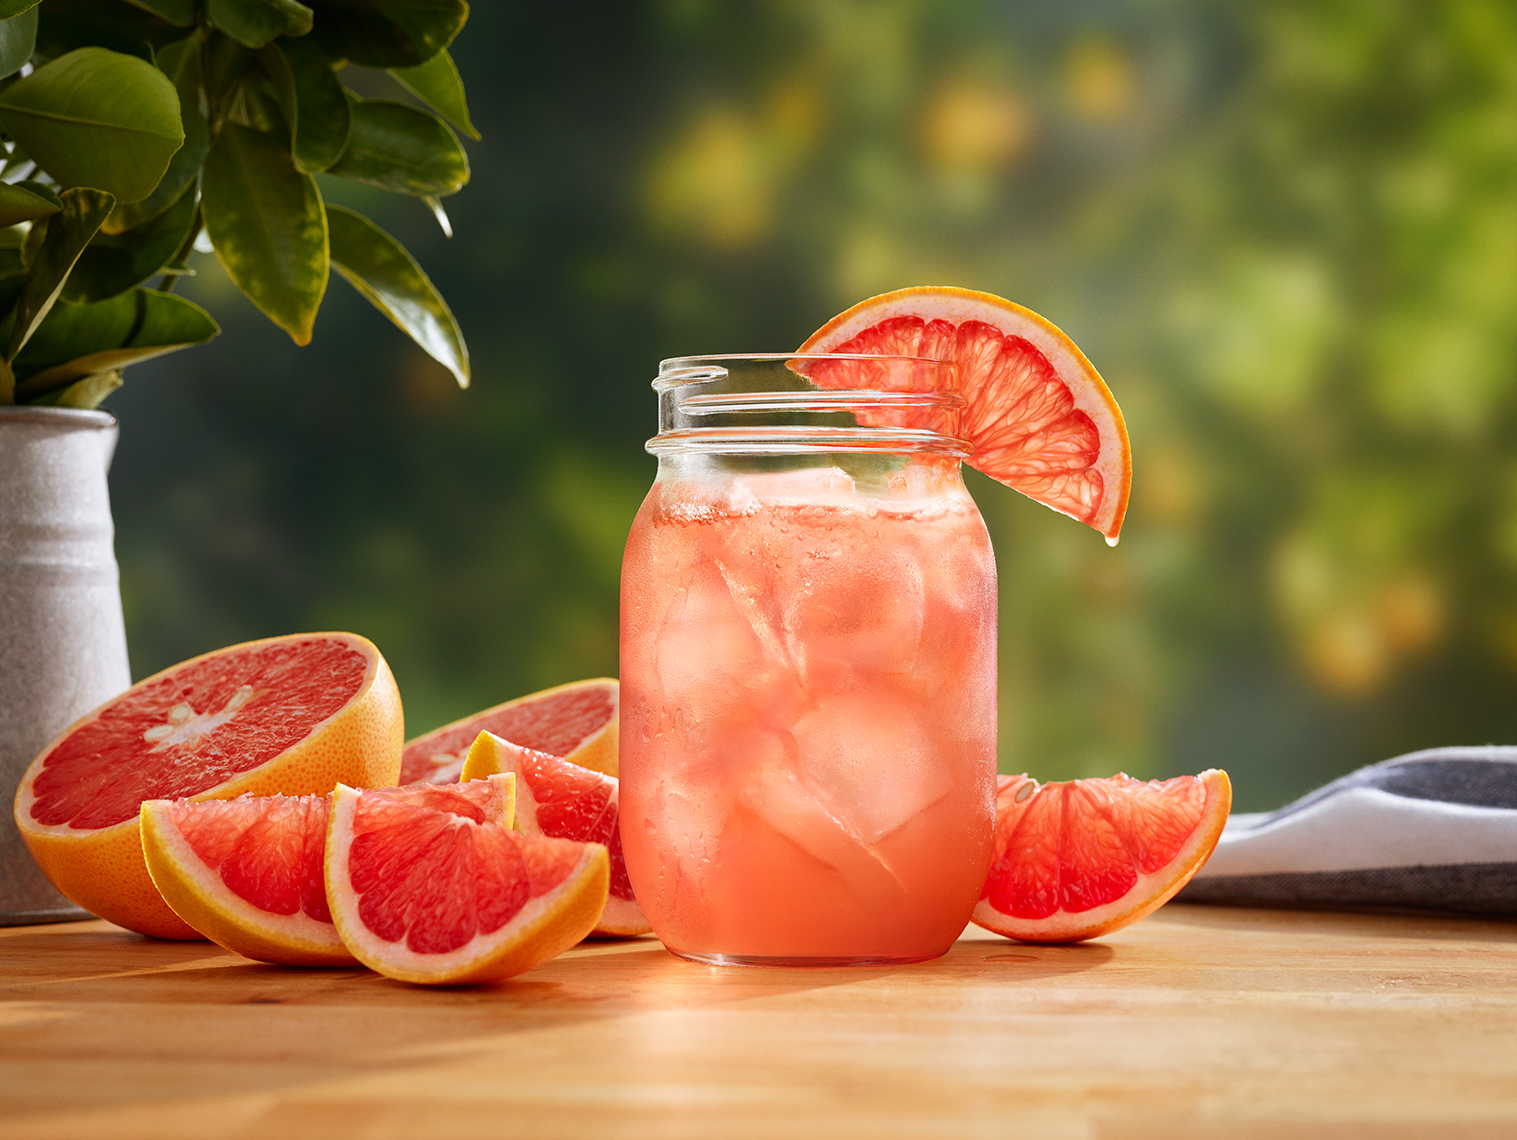 grapefruit_recipe_on_grapefruit_backdrop_023_A_72m_RGB